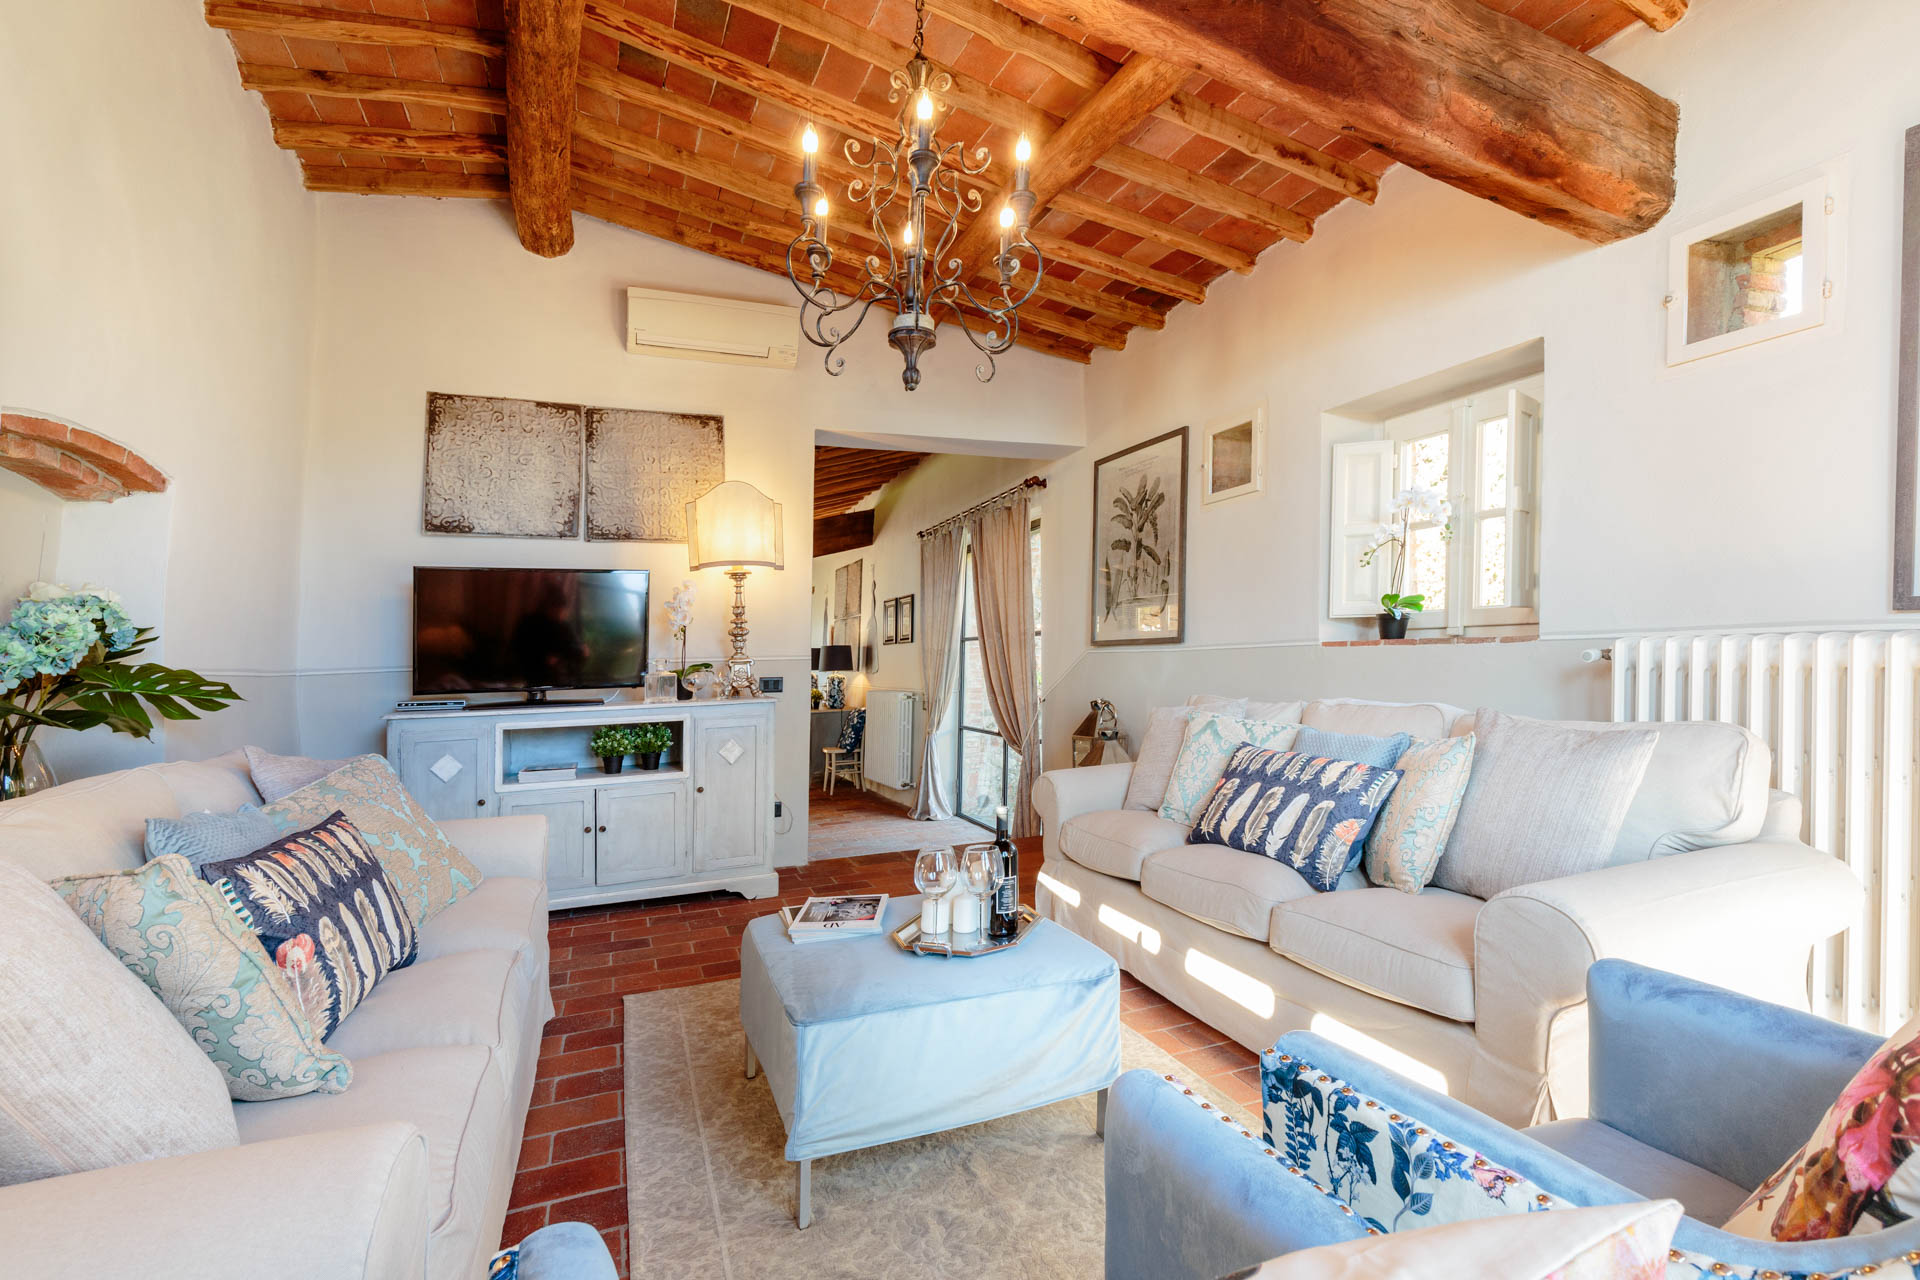 VILLA-IL-TINAIO-romantic-secluded-farmhouse-with-private-pool-and-view-in-Lucca-Tuscany50